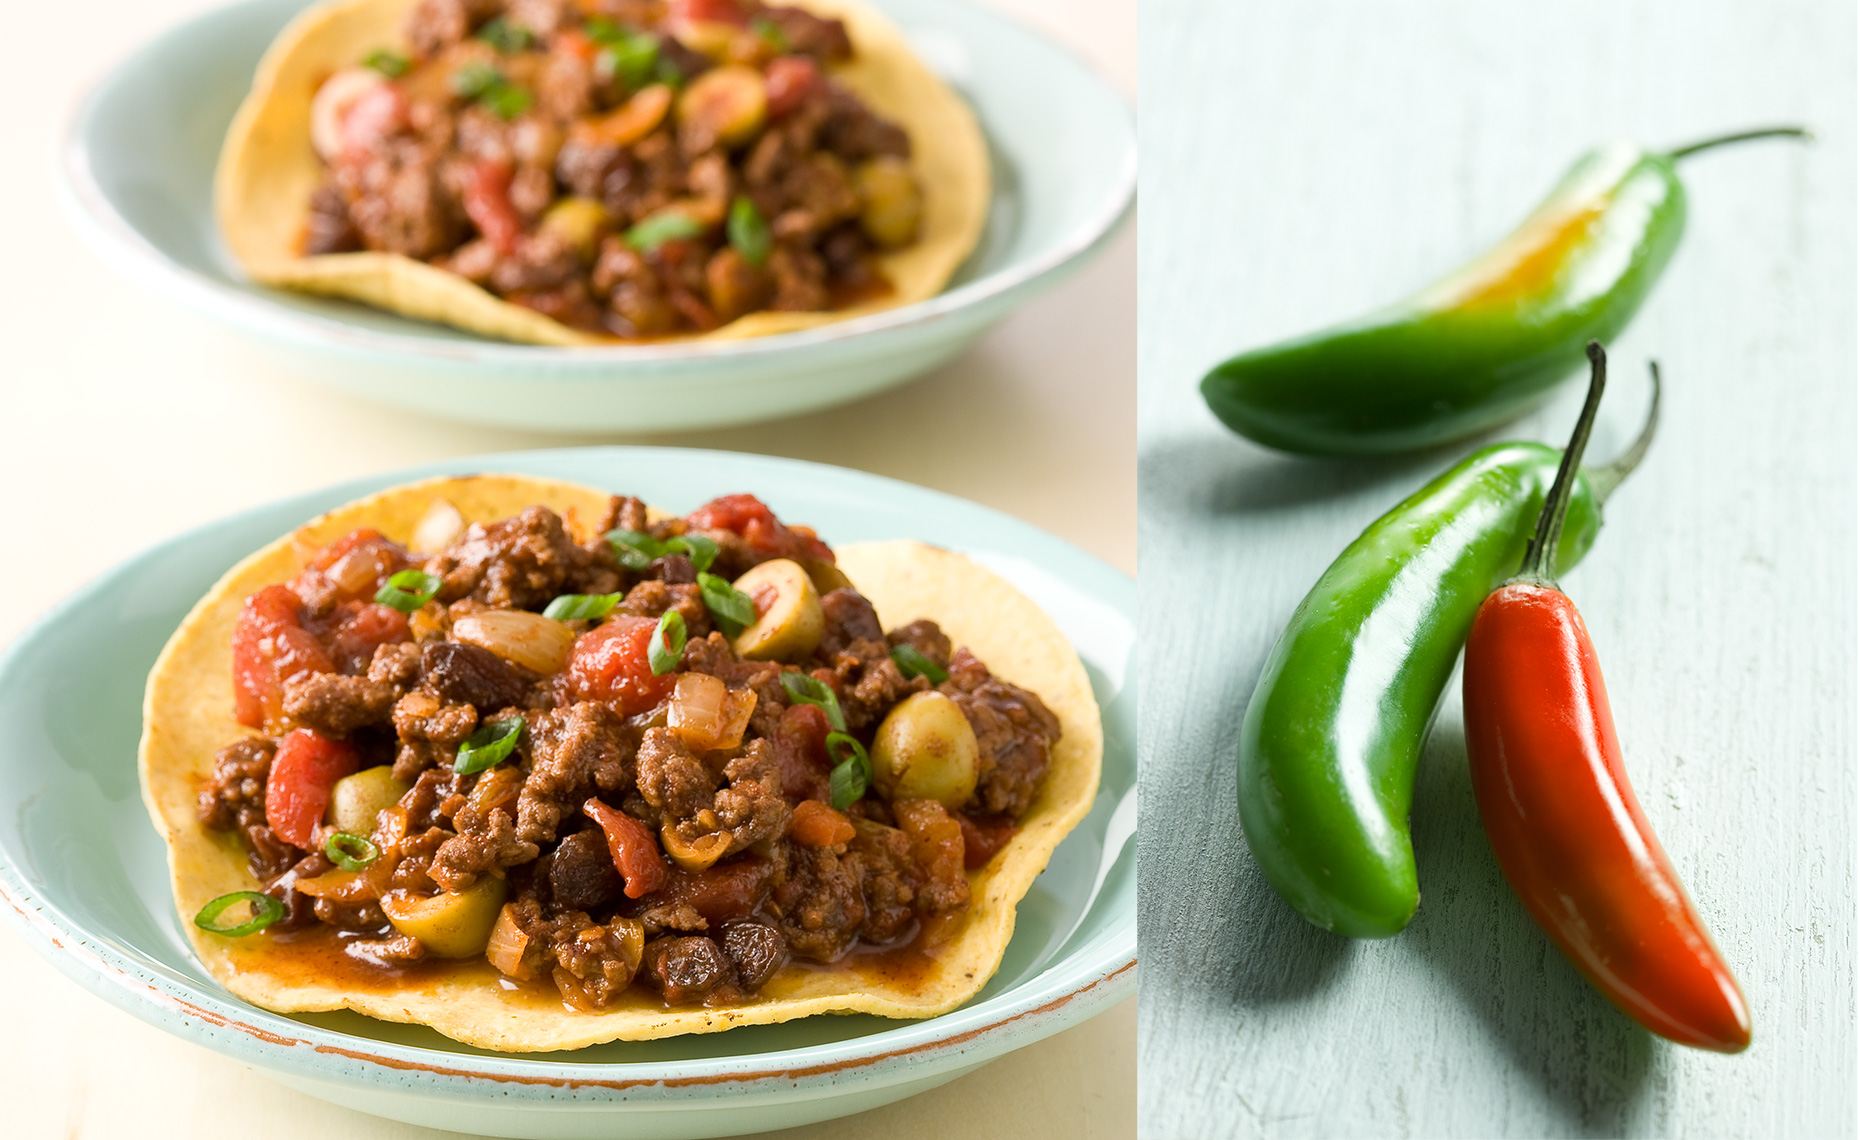 Food Photographer, Meat Photographer, Steak Photography | Pohuski Studios,  Tostadas Hot Peppers